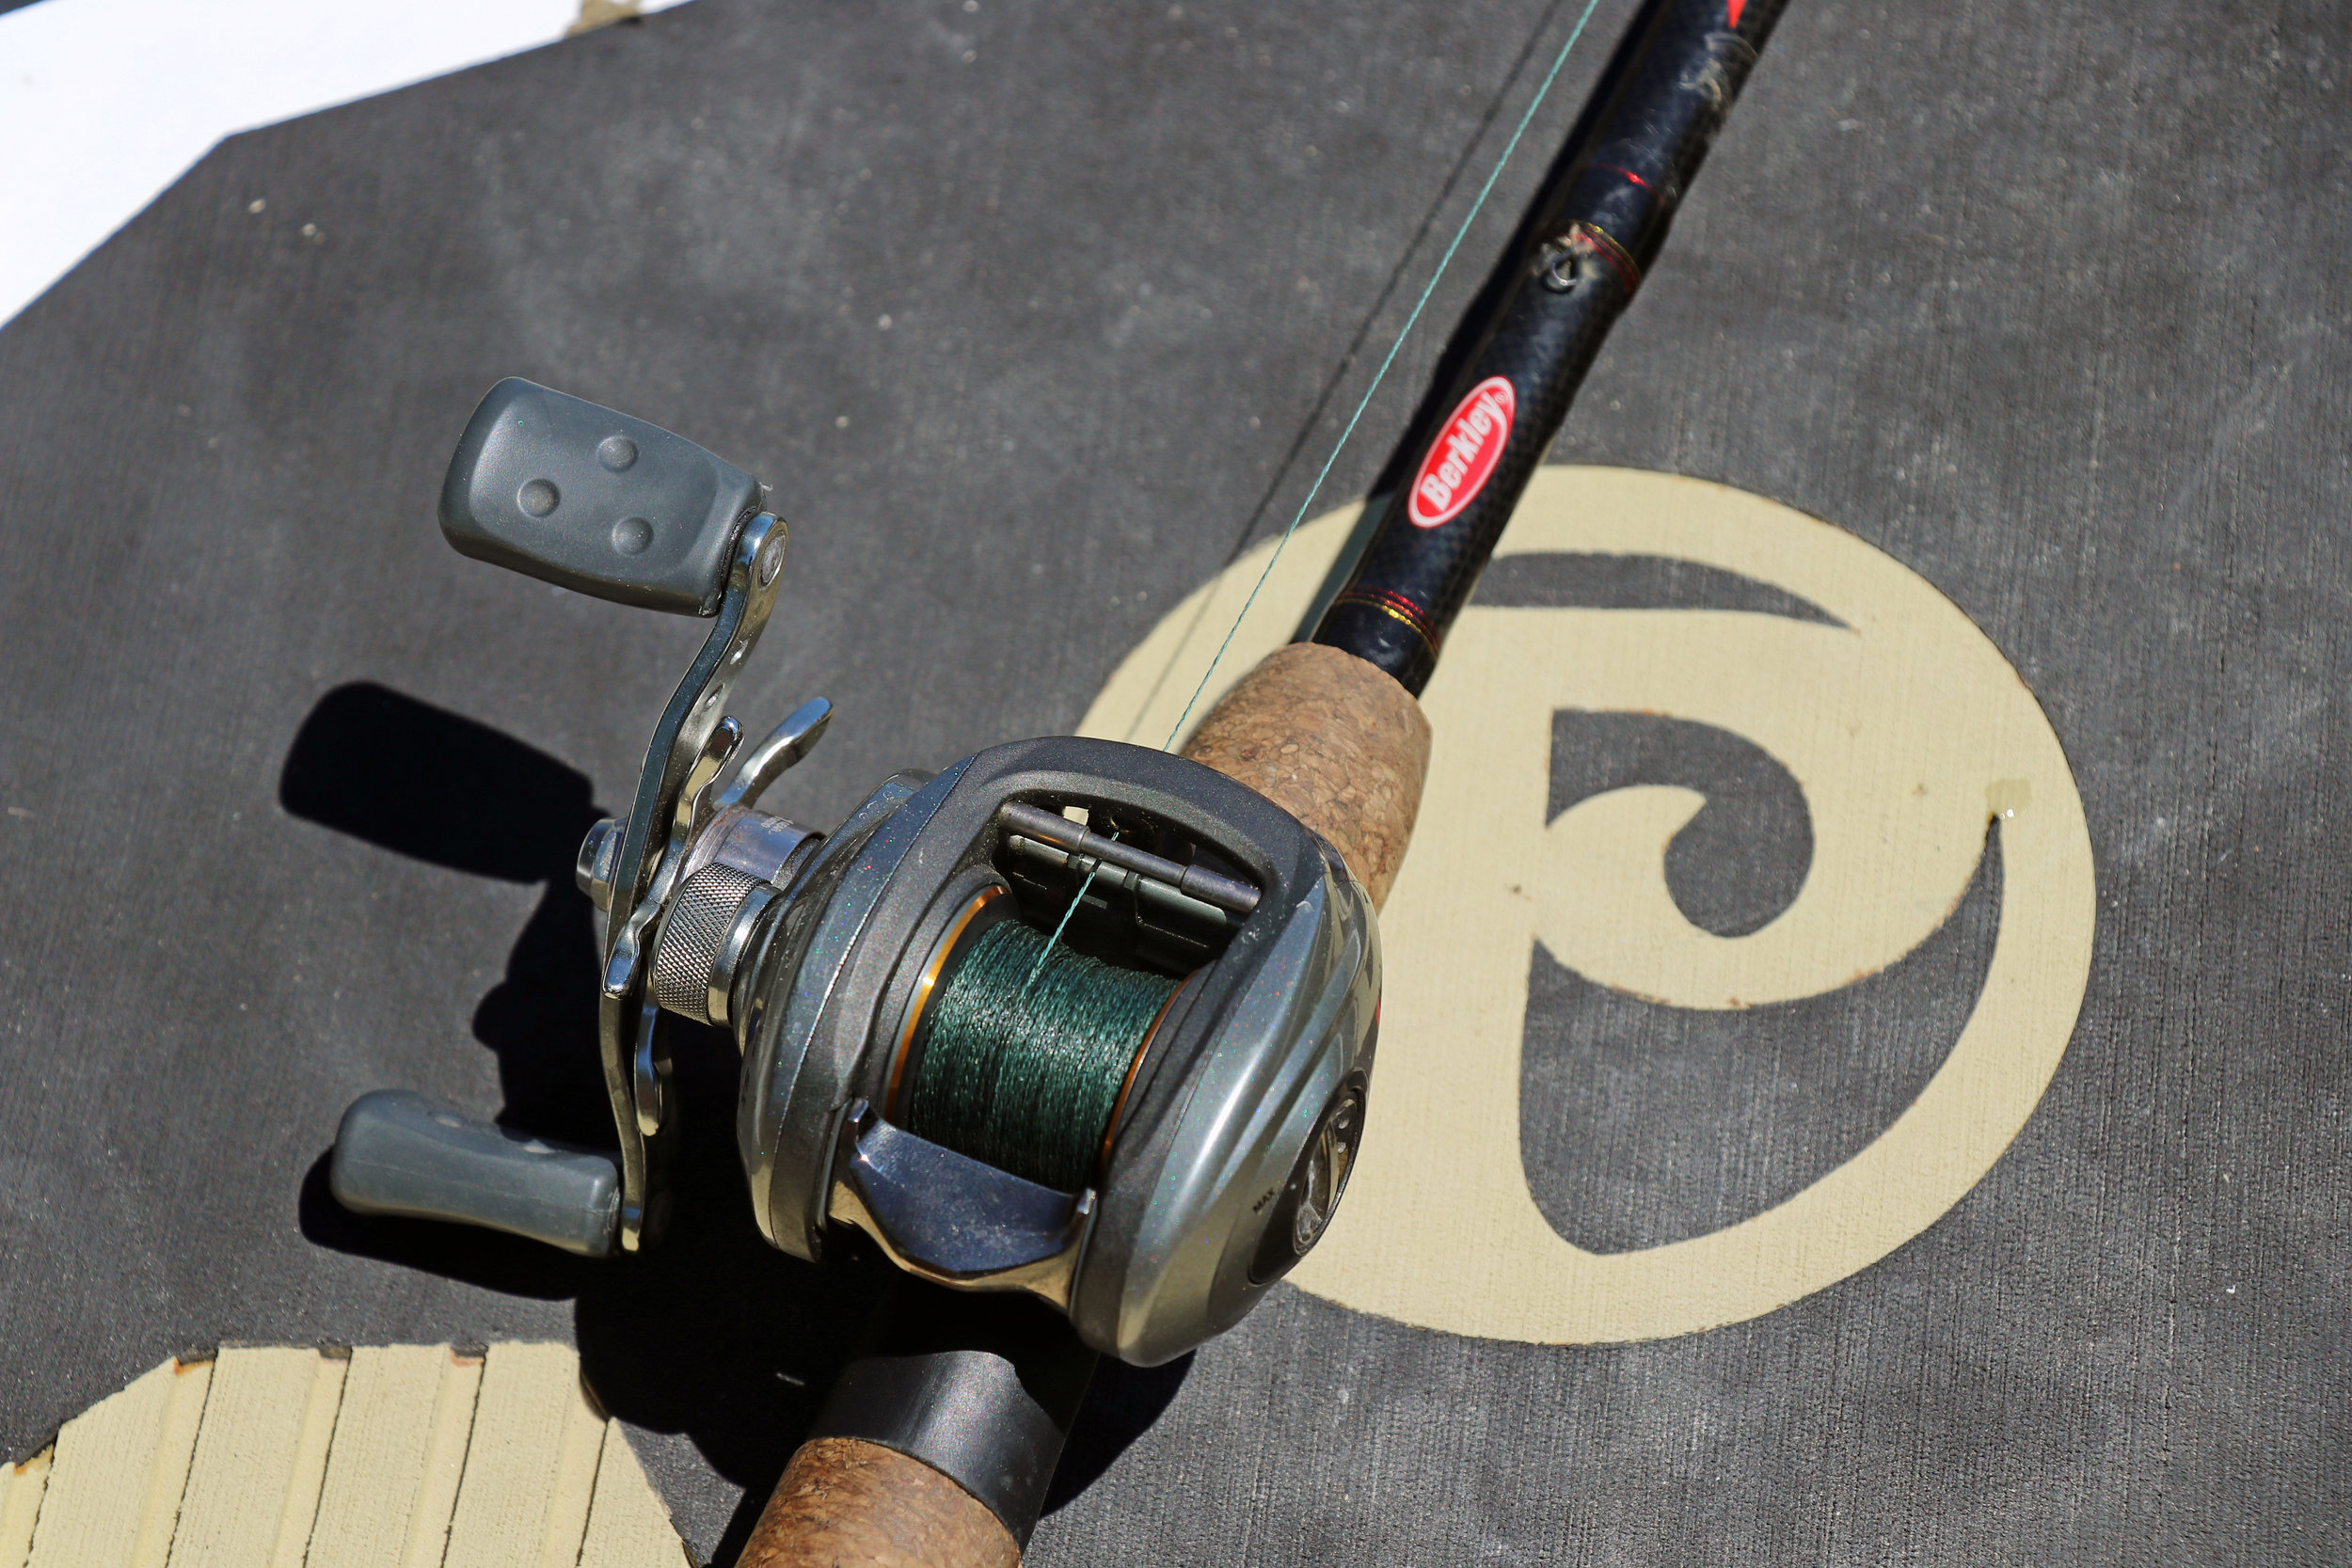 The Abu Garcia Orra SX is one of the best valued baitcasting reels in my opinion.